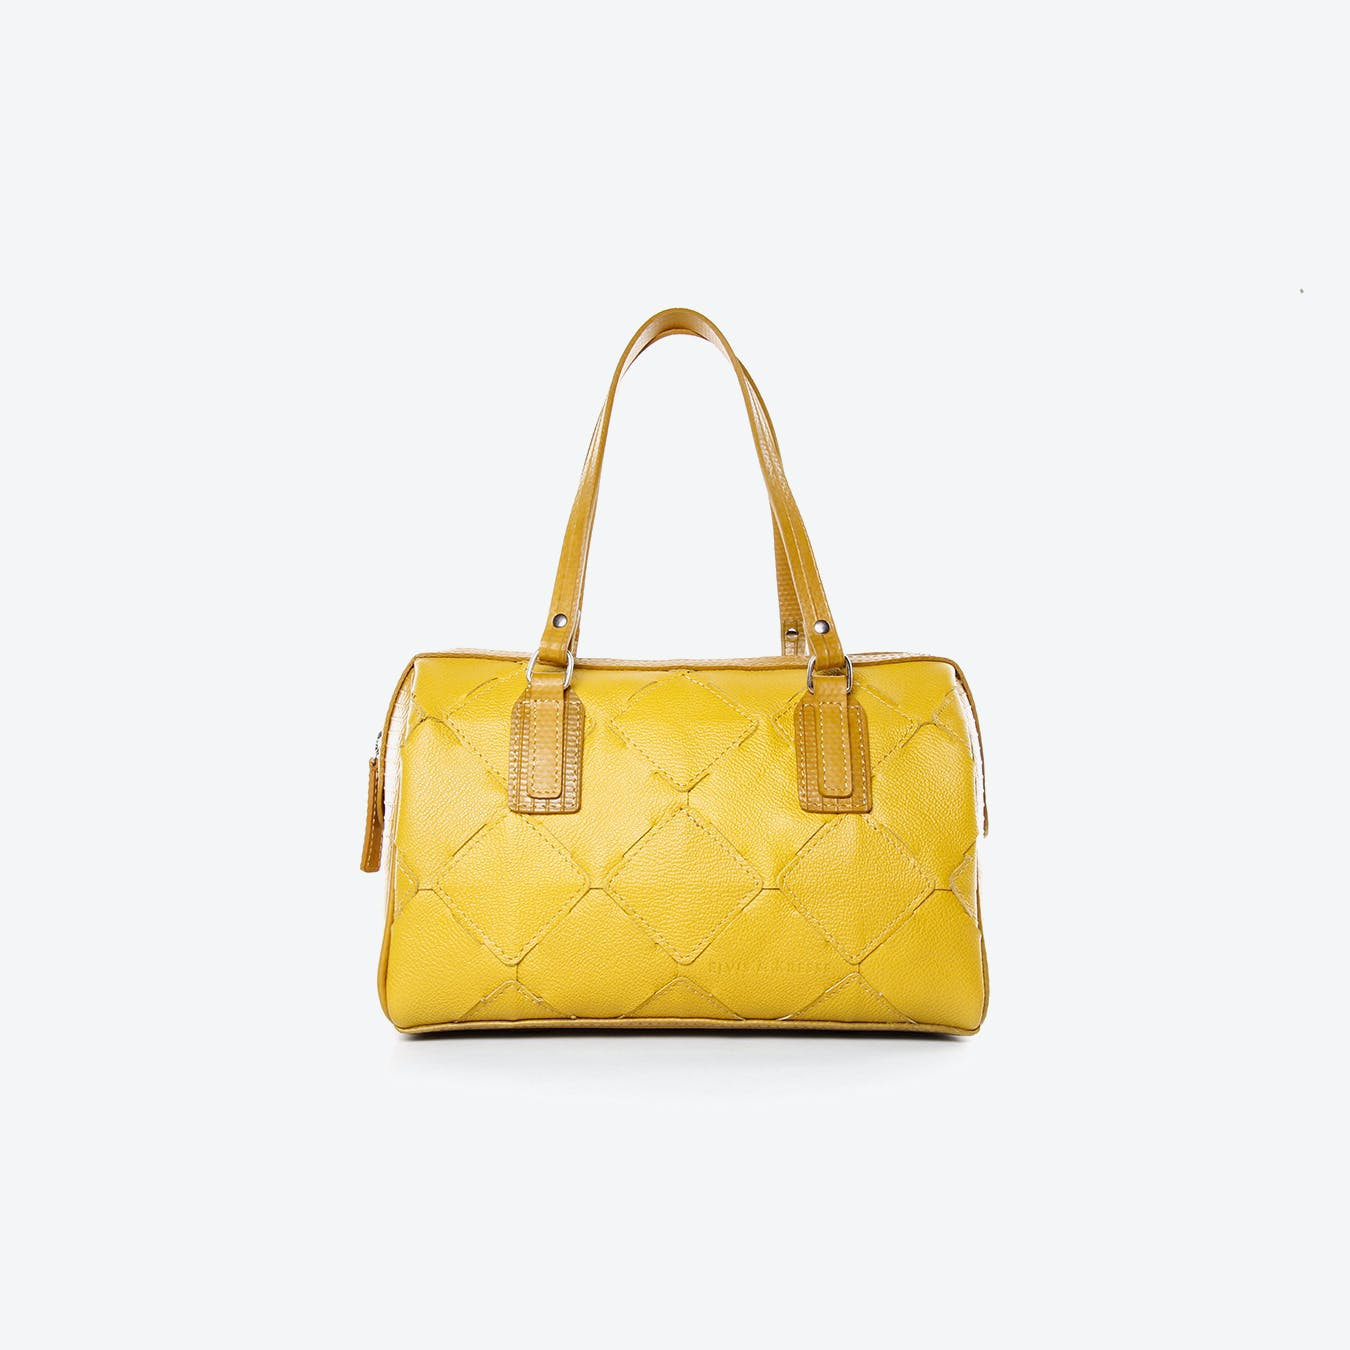 Post Bag Fire Hide in Yellow Burberry Leather